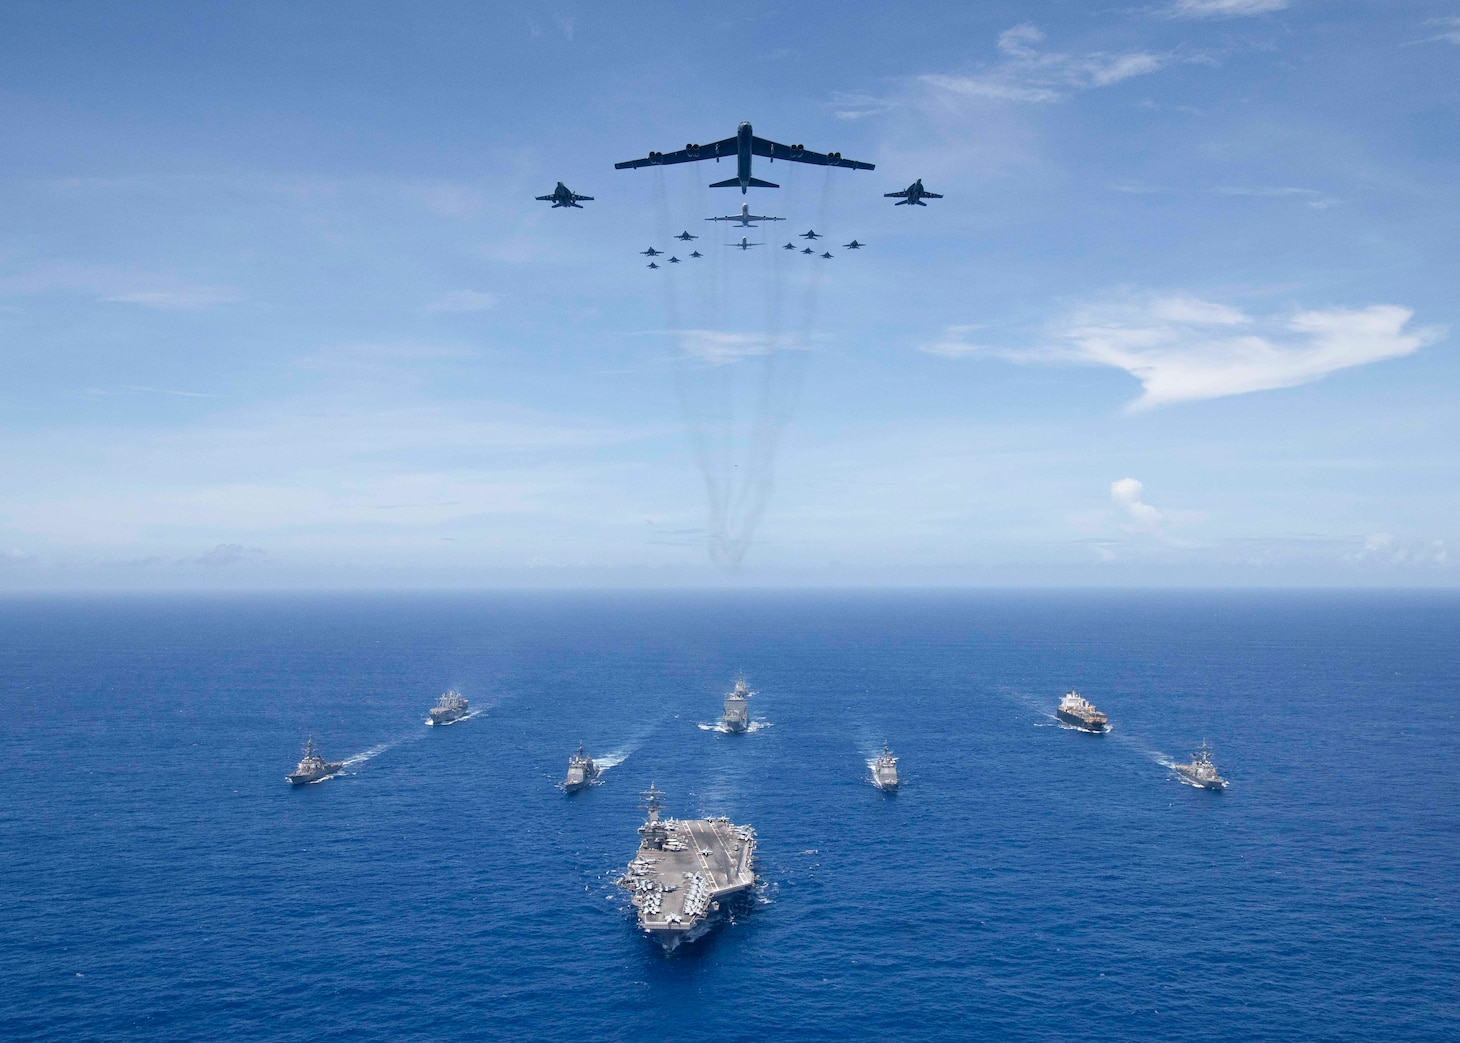 PHILIPPINE SEA (Sept. 17, 2018) USS Ronald Reagan (CVN 76) leads a formation of Carrier Strike Group Five ships as U.S. Air Force B-52 Stratofortress aircraft and U.S. Navy F/A-18s pass overhead for a photo exercise during Valiant Shield 2018. The biennial, U.S. only, field-training exercise focuses on integration of joint training among the U.S. Navy, Air Force and Marine Corps.